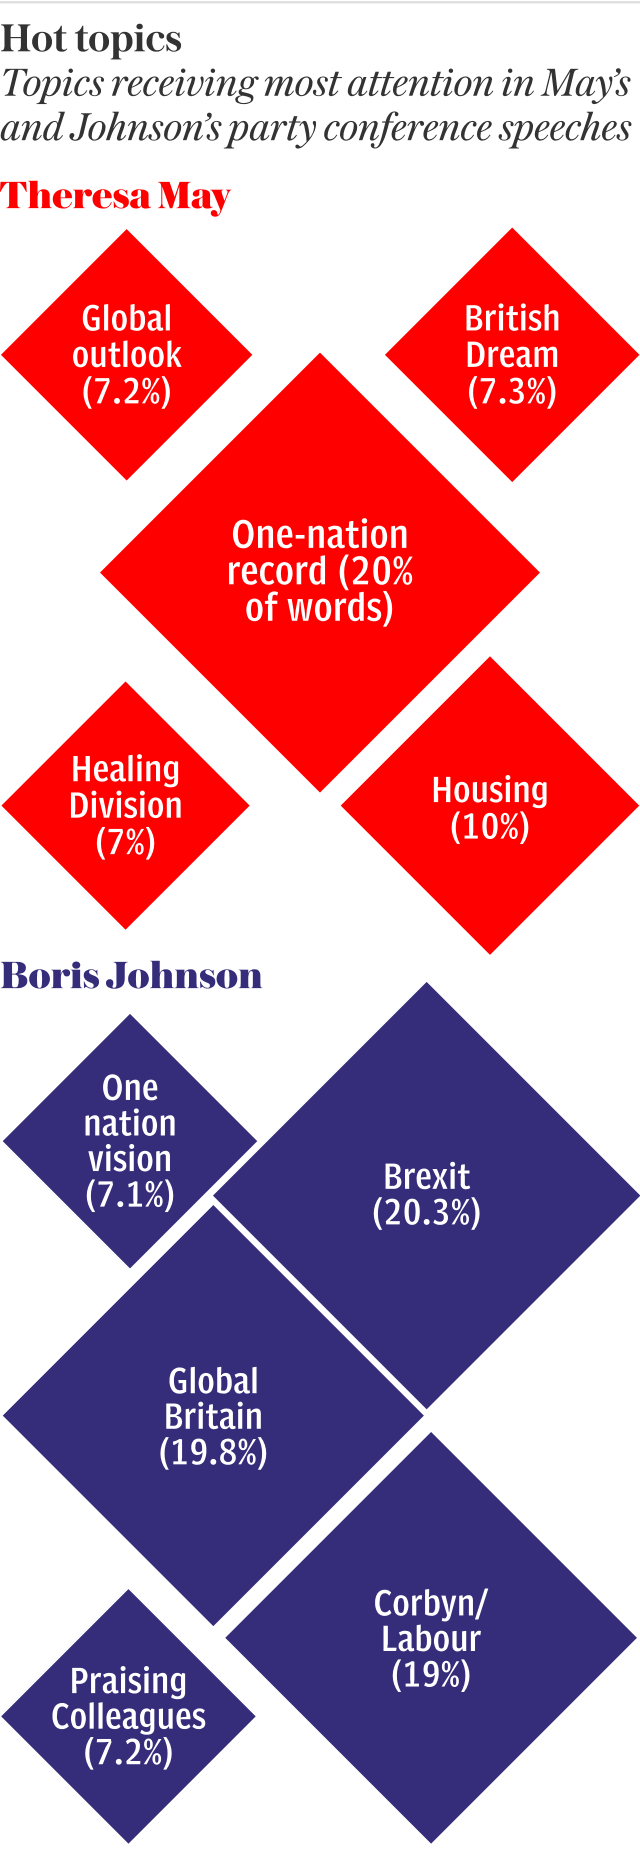 Comparison of topics in Theresa May and Boris Johnson's speeches